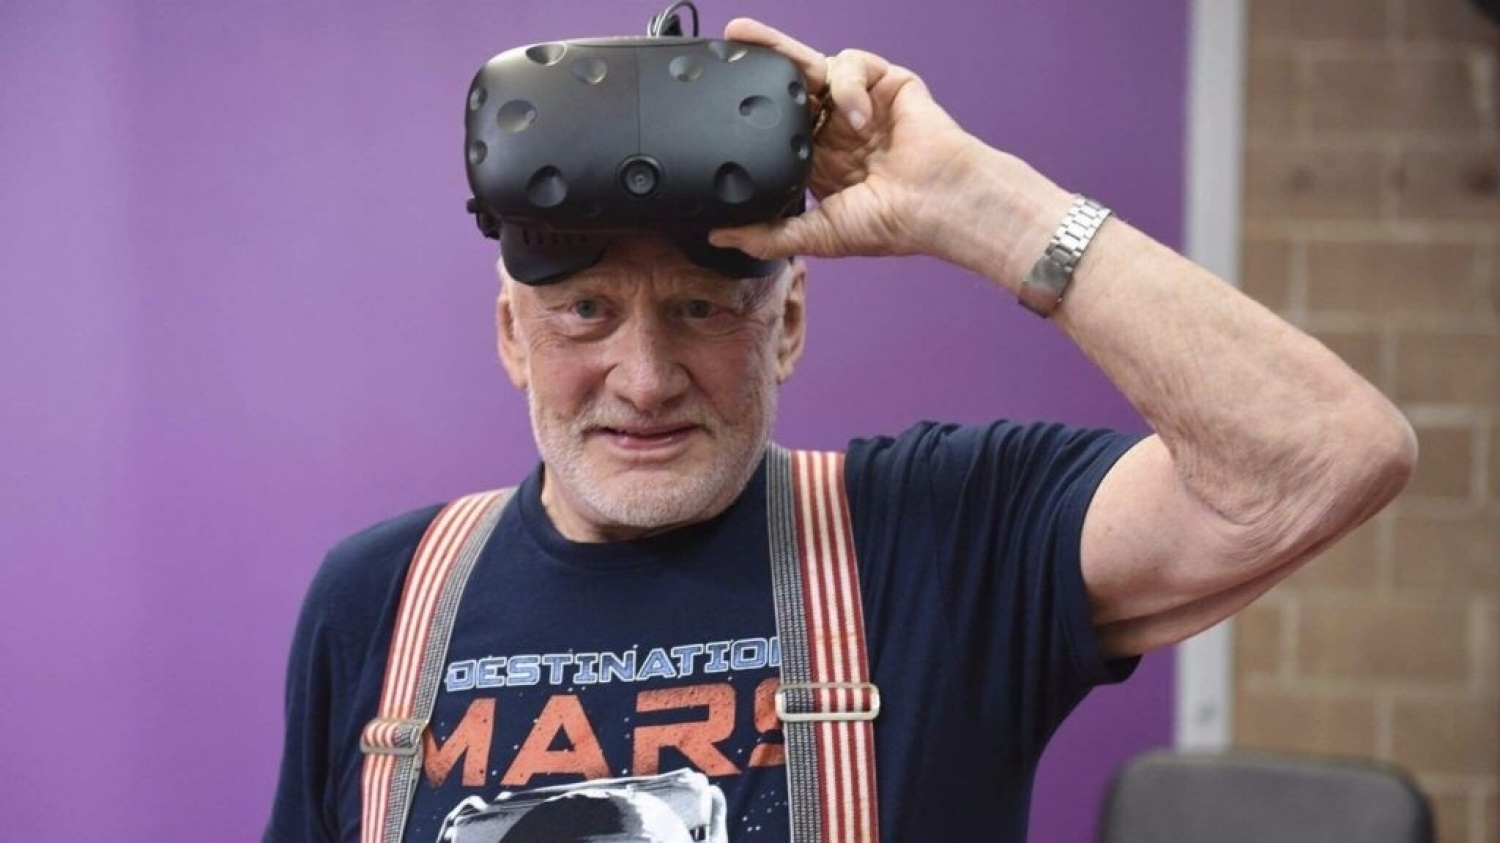 Buzz Aldrin takes you to Mars in VR - BBC News